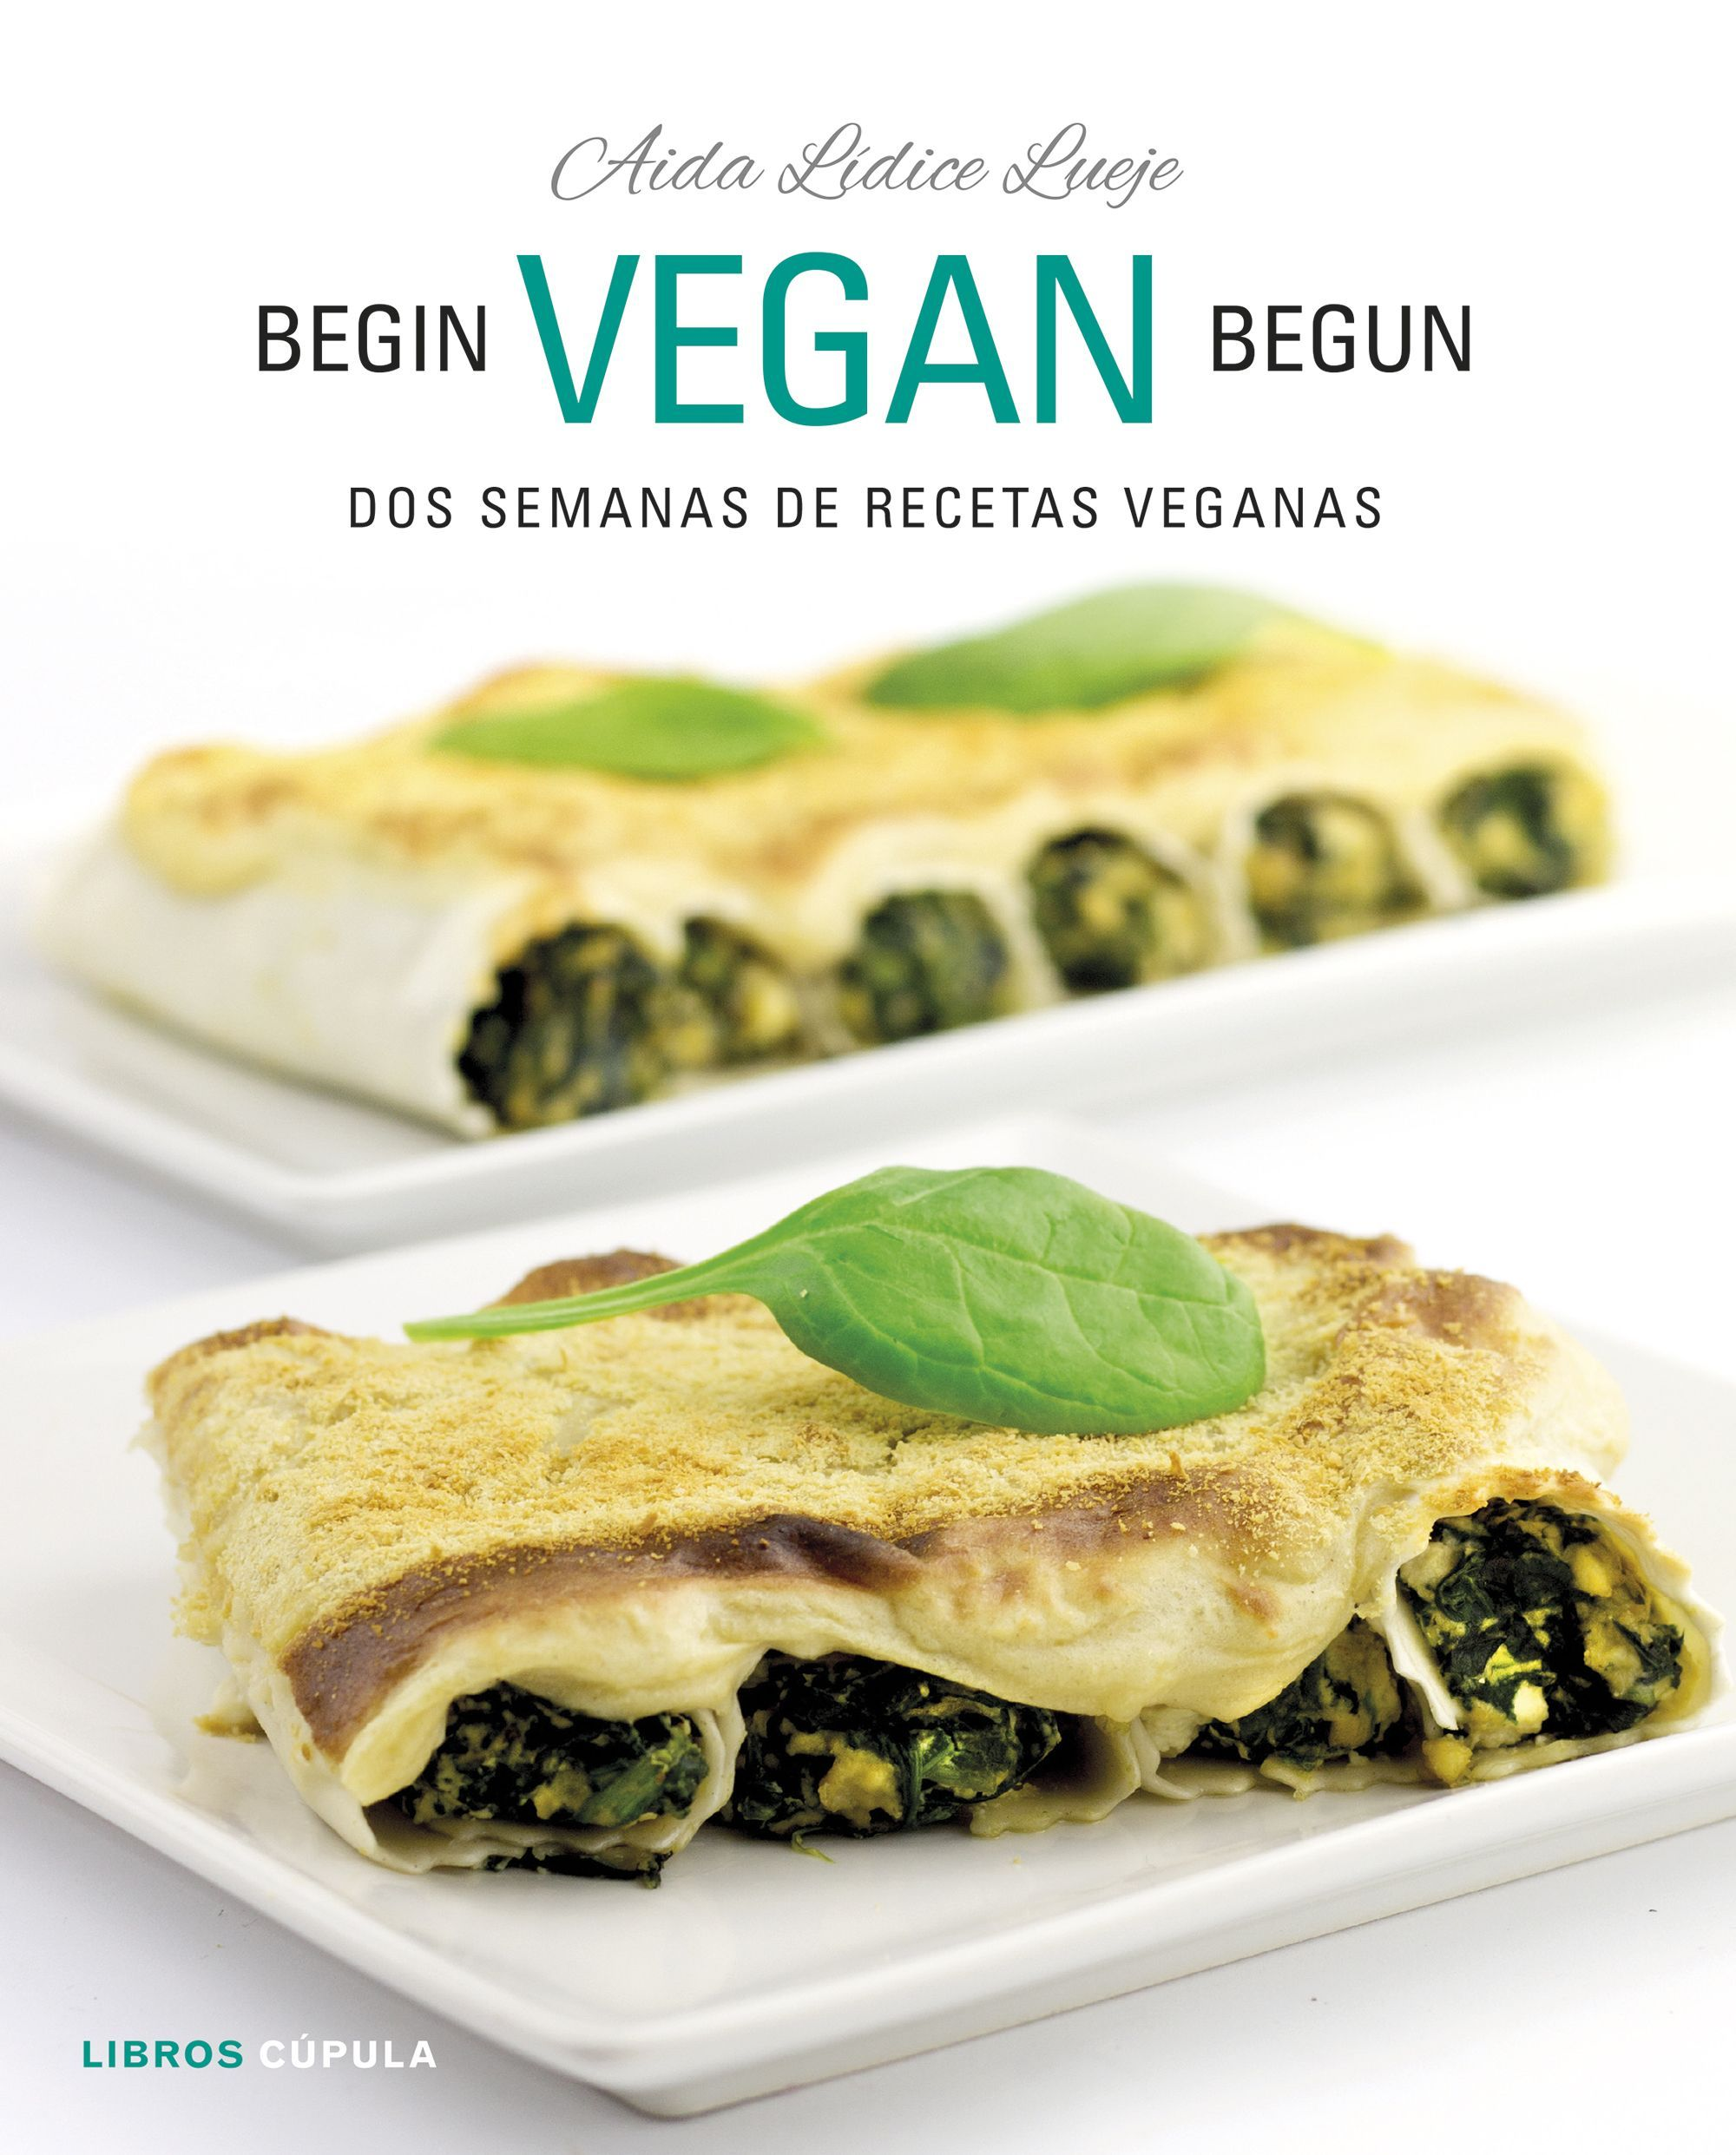 BEGIN VEGAN BEGUN